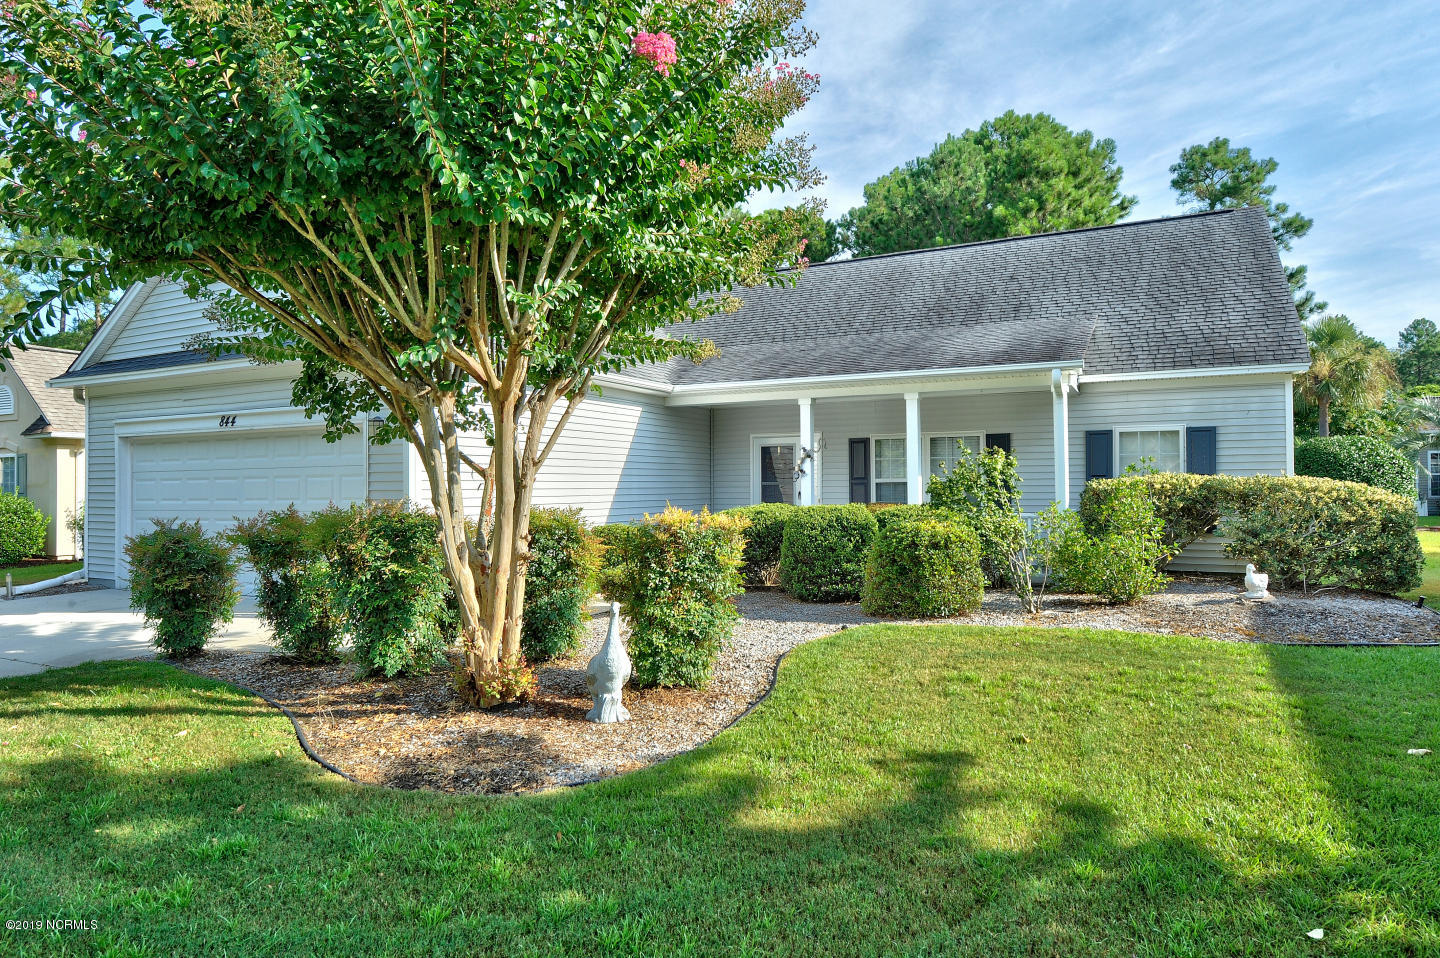 844 Sandpiper Bay Drive Sunset Beach, NC 28468